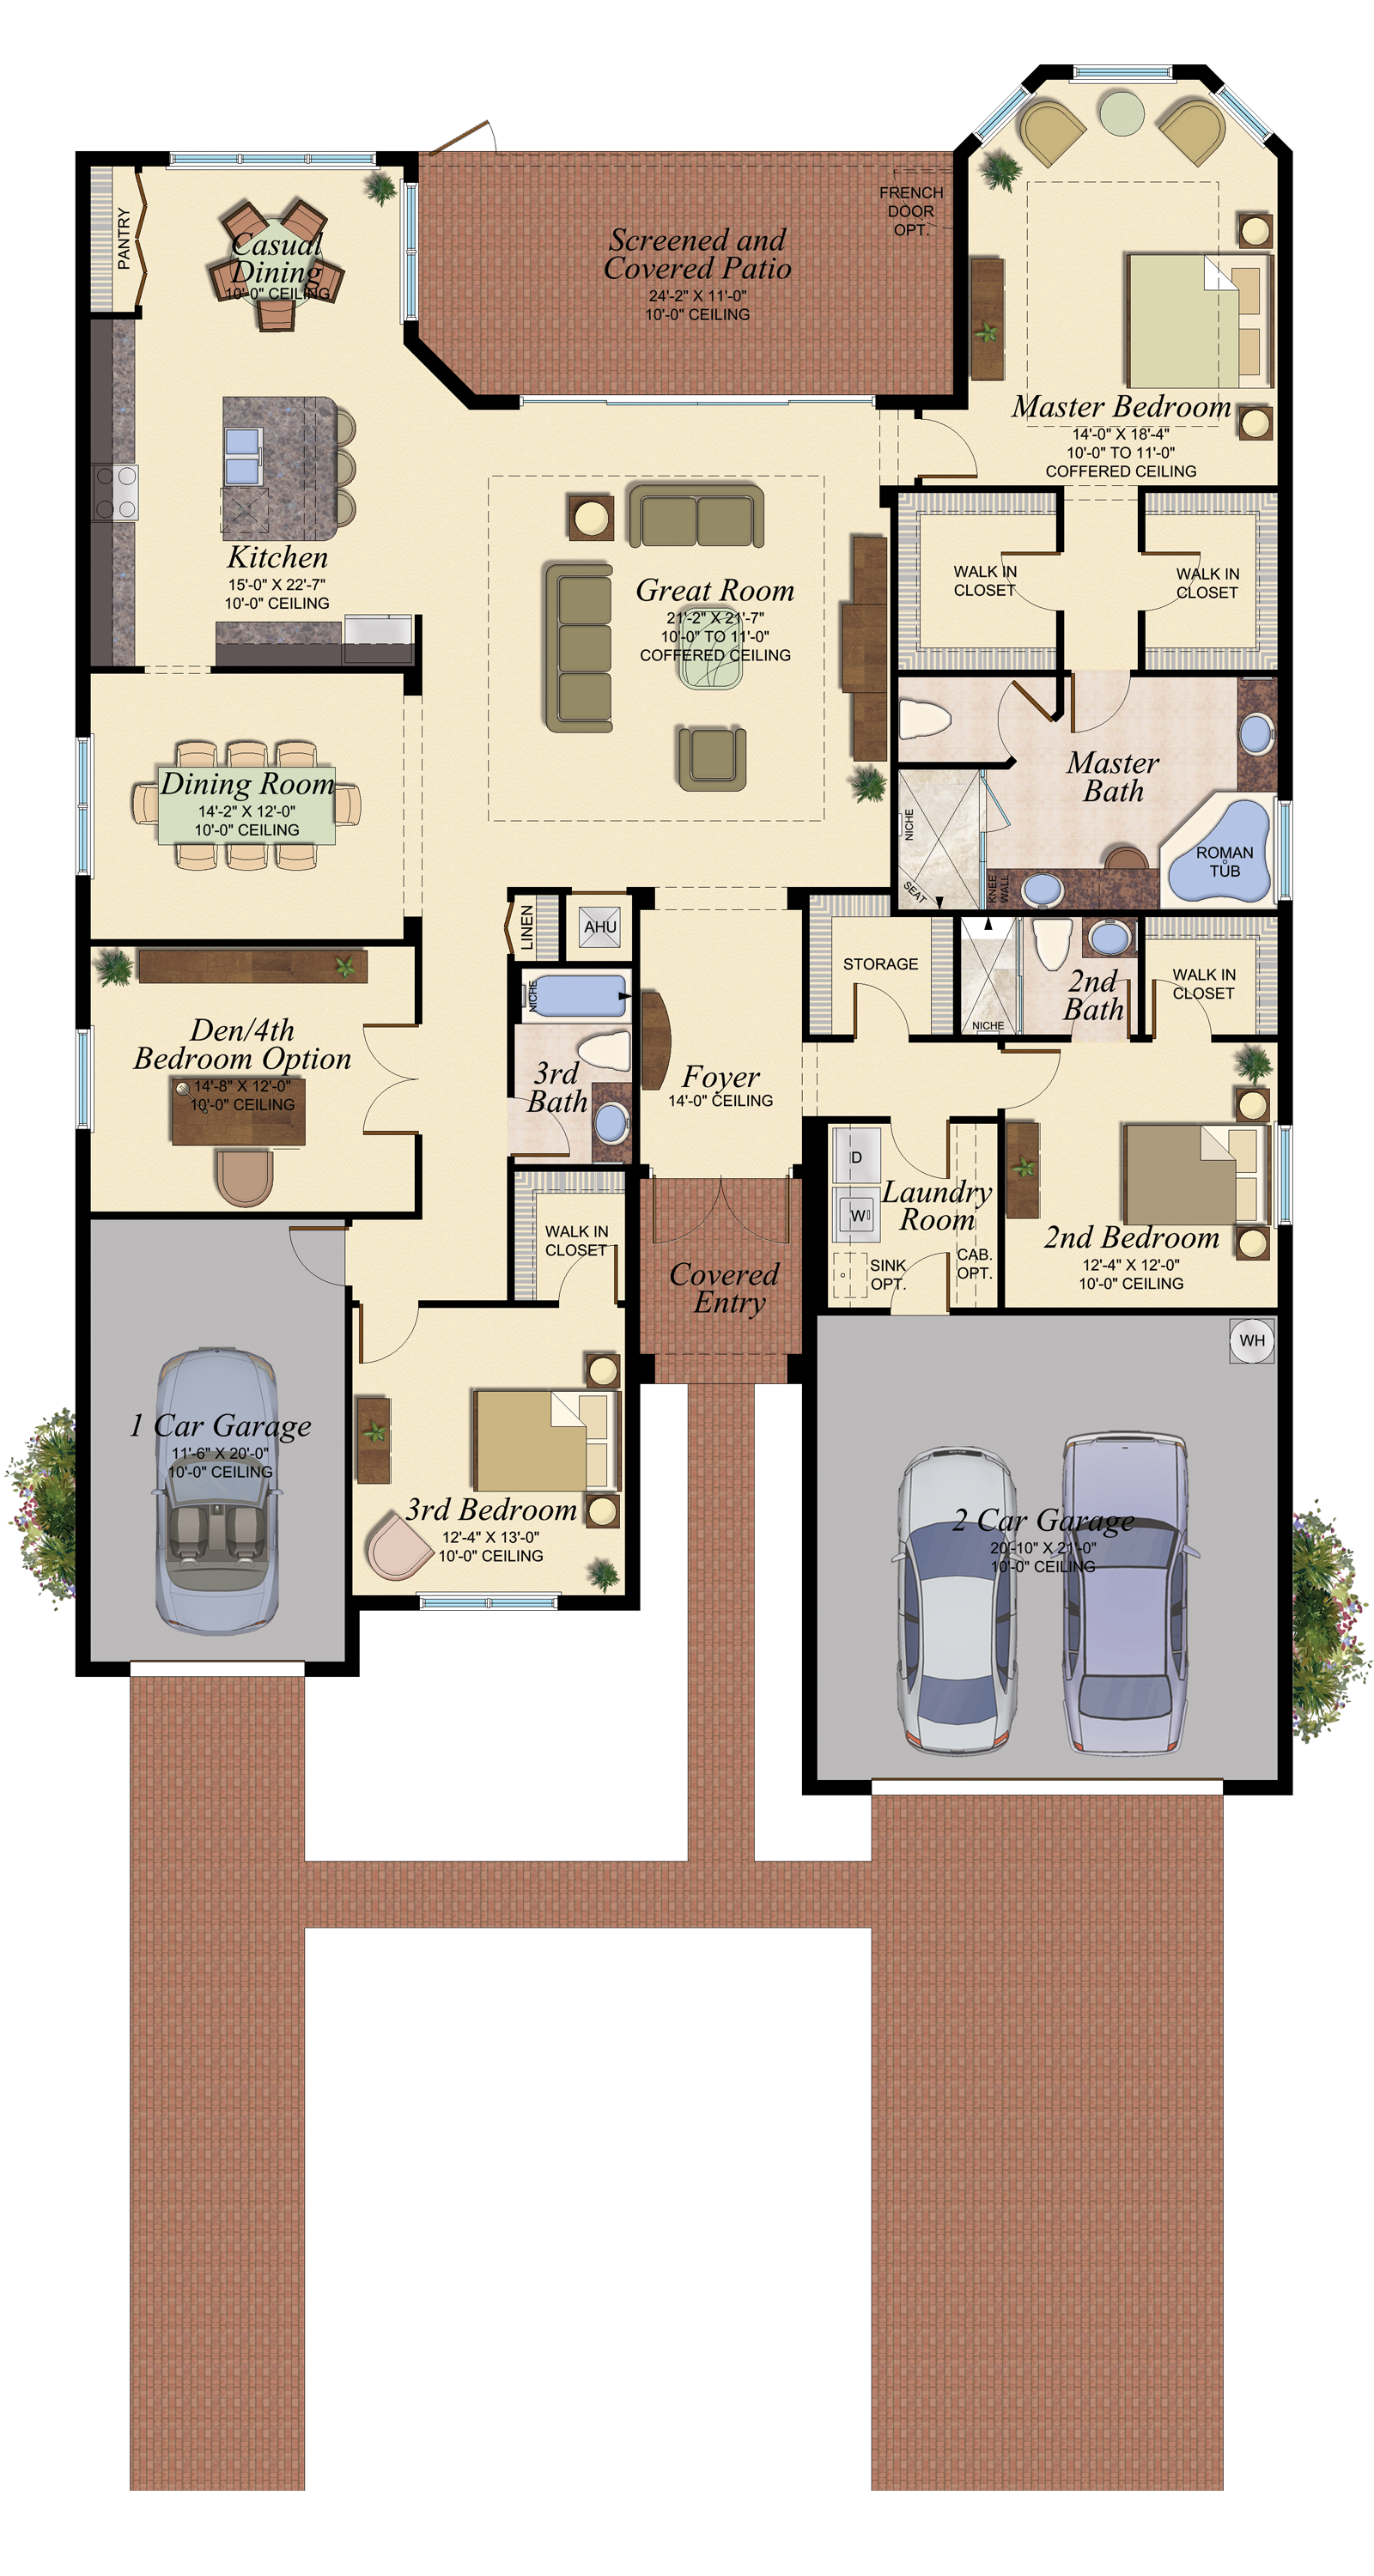 GL Homes   Dream house plans, House blueprints ... on swimming pool plans florida, kitchen cabinets florida, townhouse plans florida, open floor plans florida, cottage plans florida,